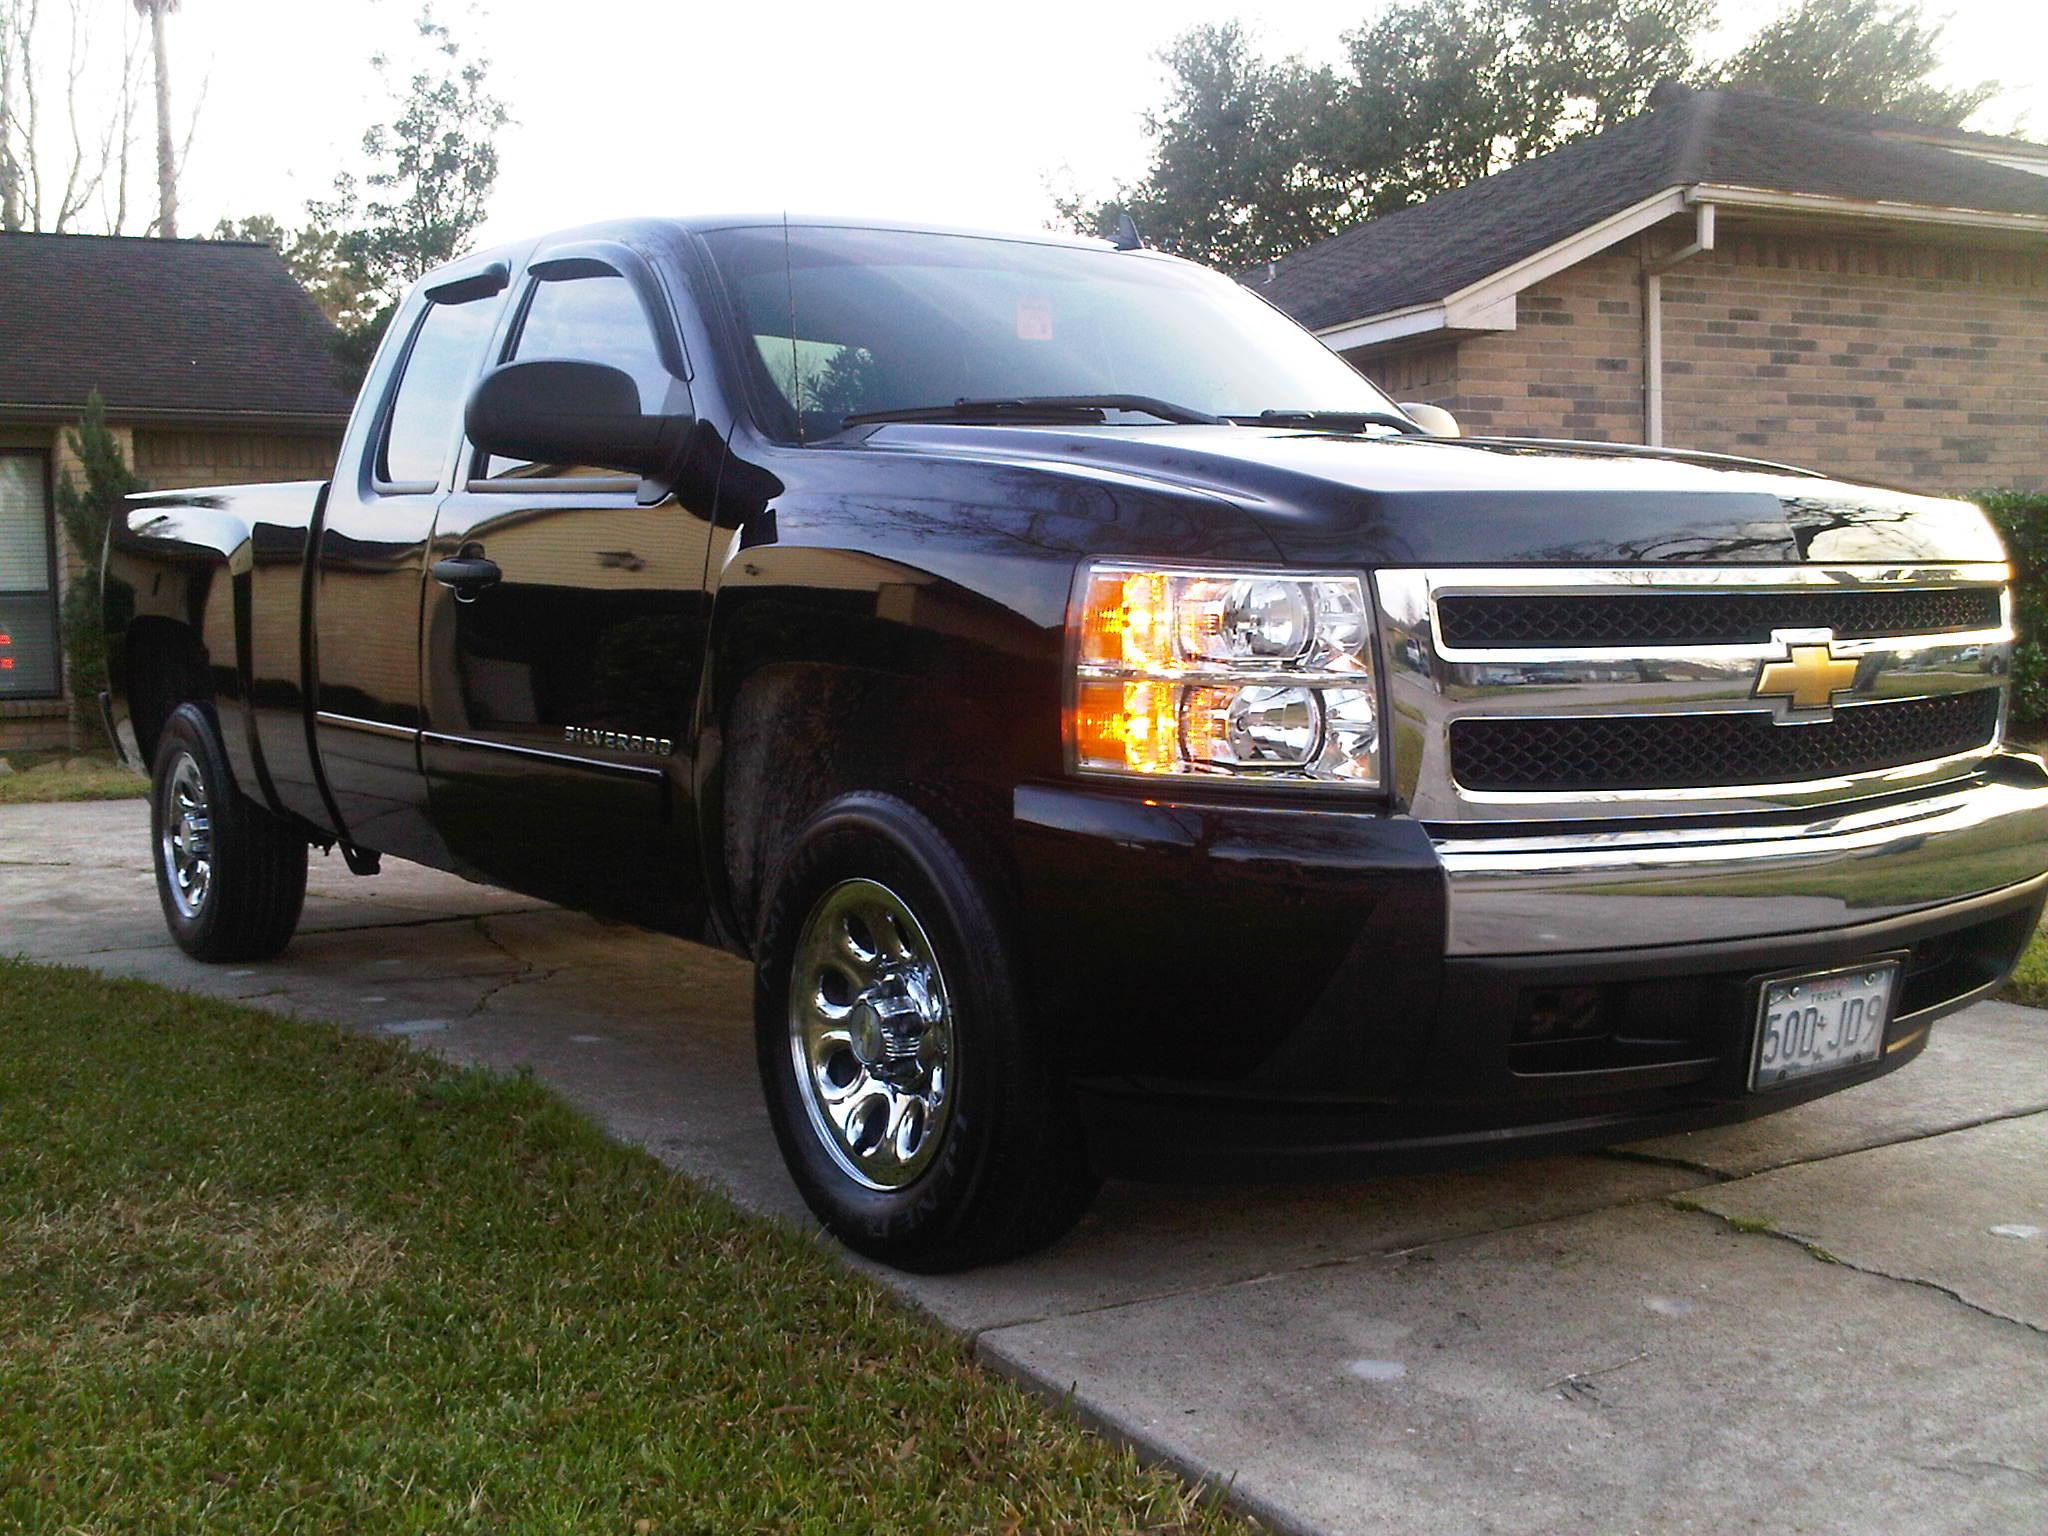 phrawstbyte 2008 chevrolet silverado 1500 extended cab specs photos modification info at cardomain. Black Bedroom Furniture Sets. Home Design Ideas